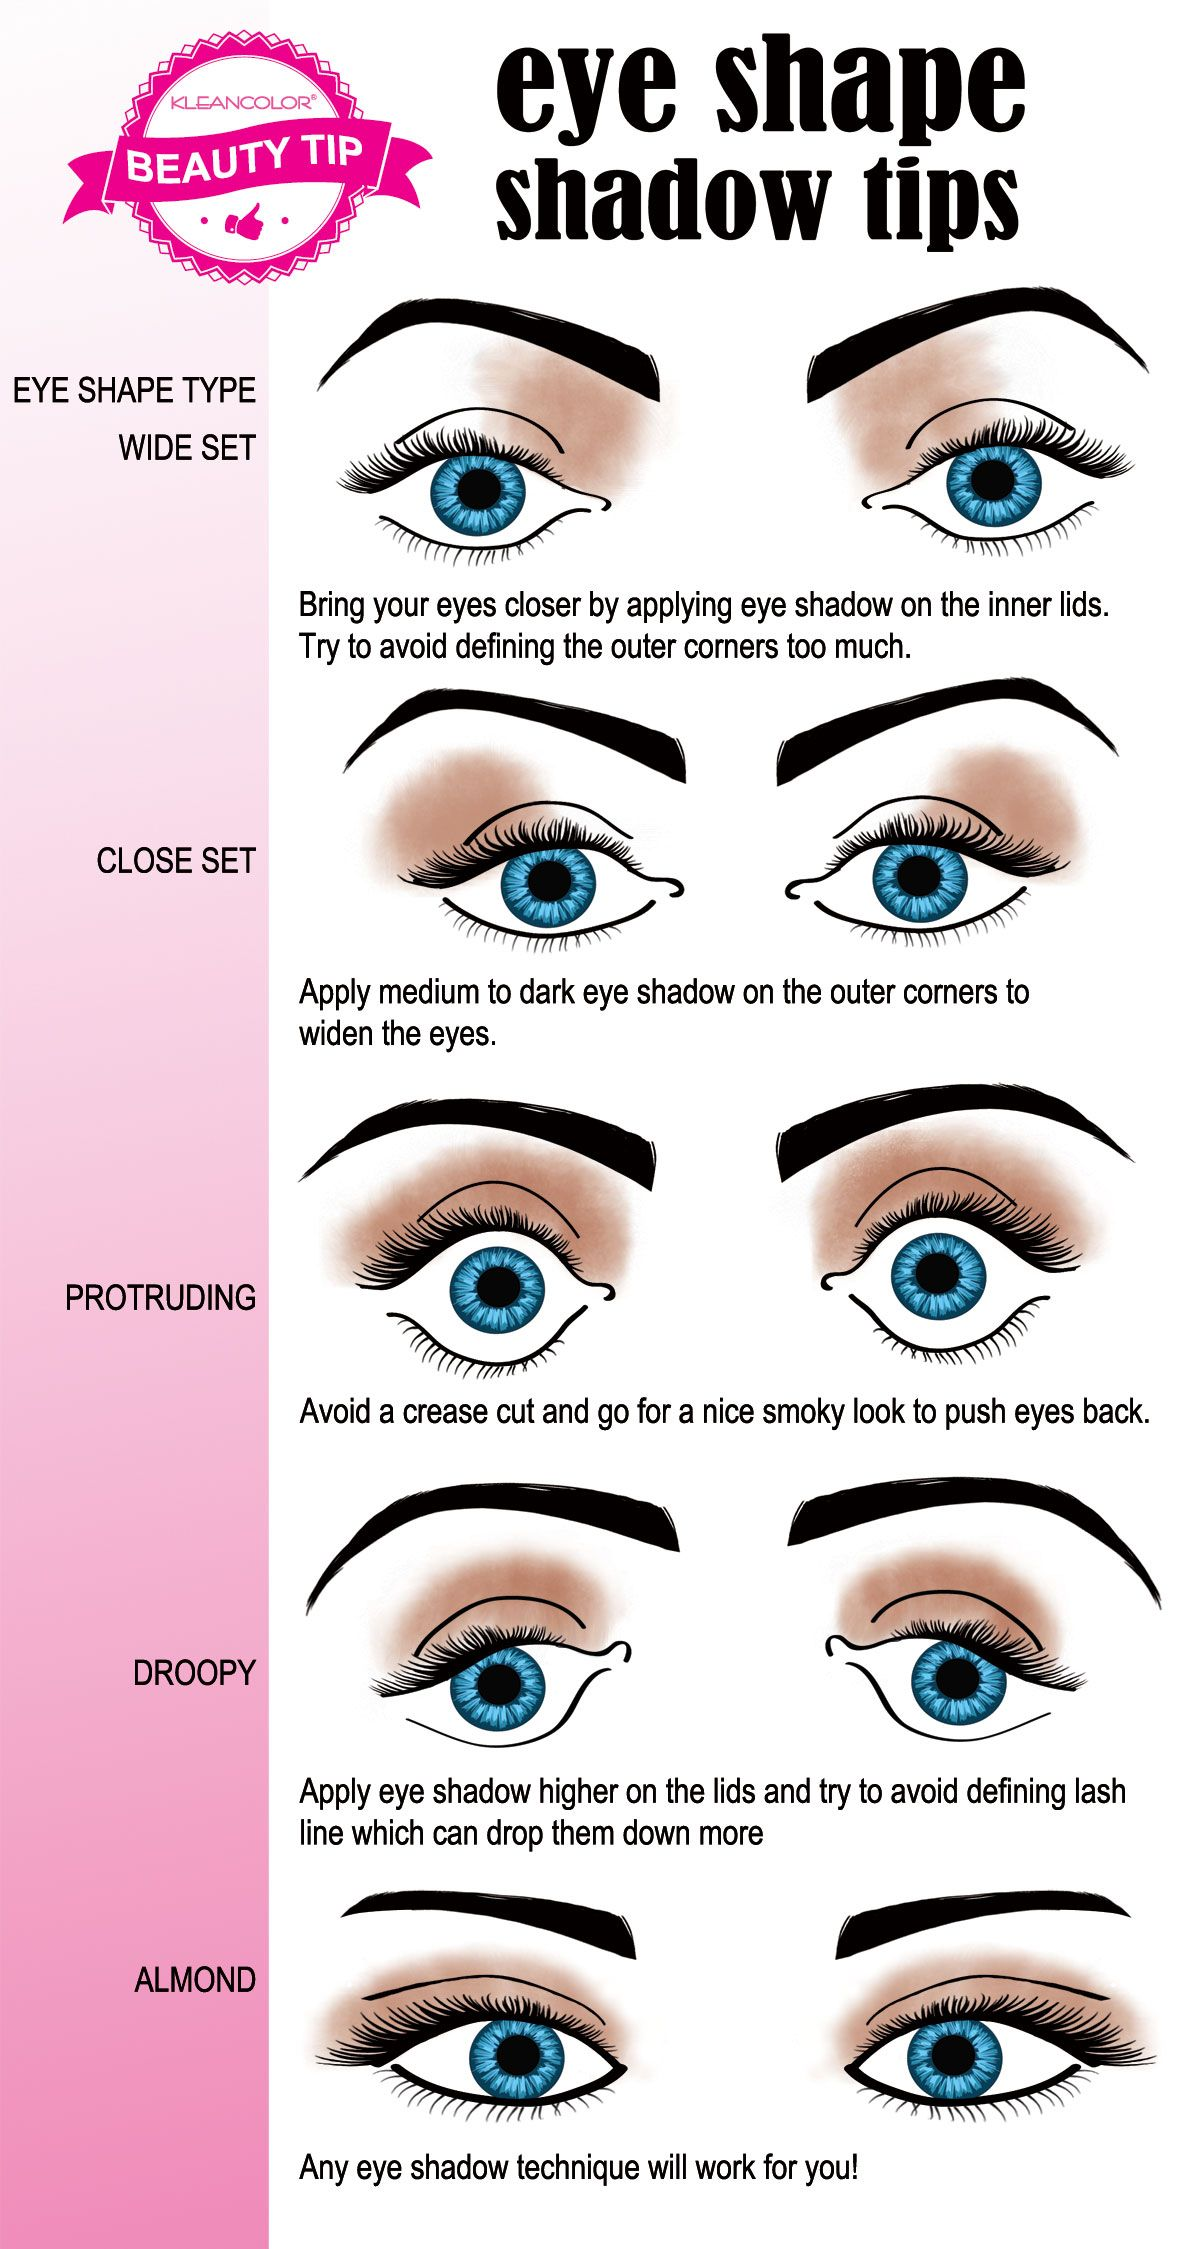 This Helpful Beauty Tip Shows How To Enhance Your Eye Shape With The